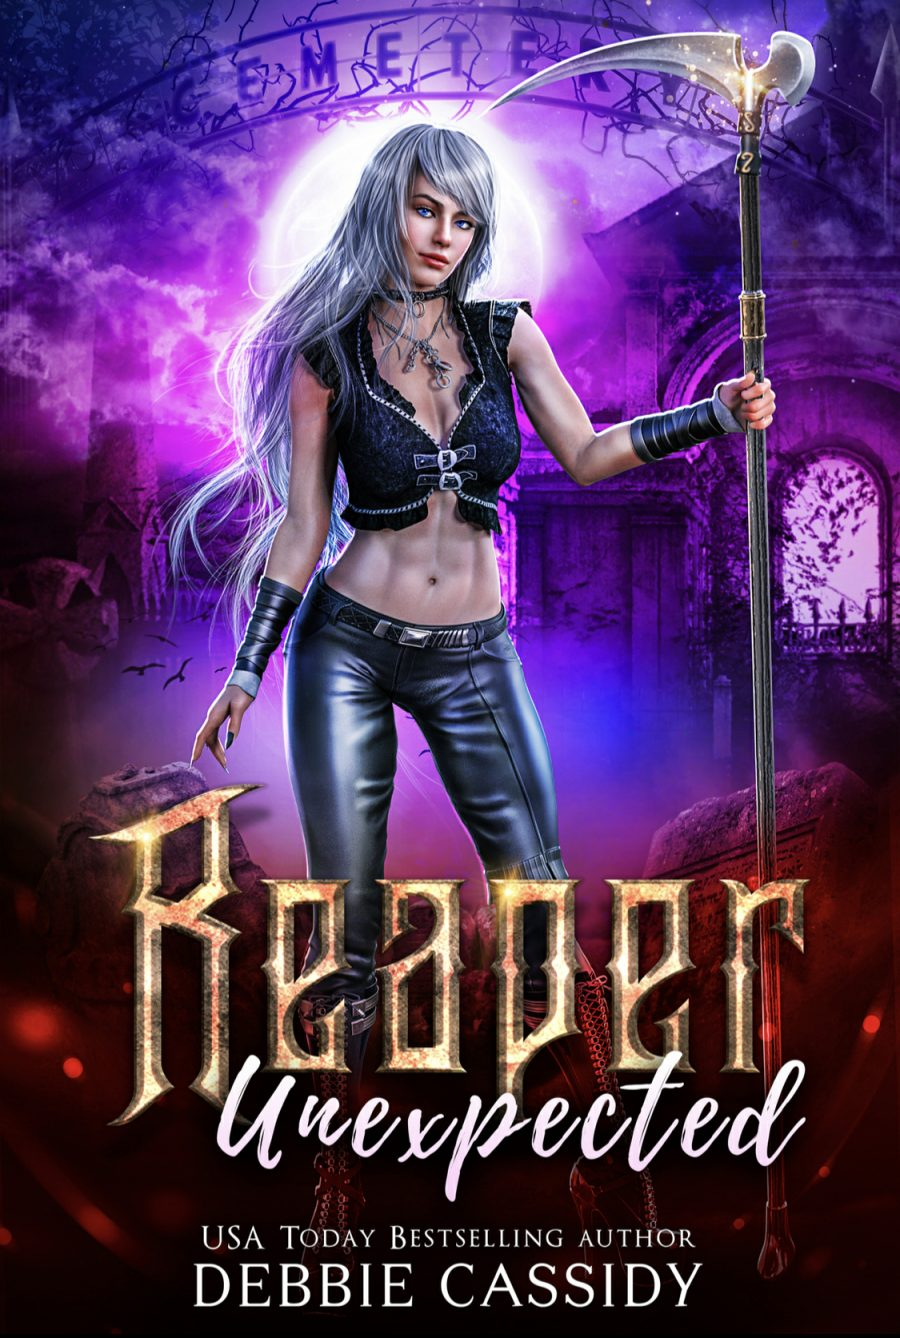 Reaper Unexpected by Debbie Cassidy - A Book Review #BookReview #PNR #UF #NewRelease #5Stars #SlowBurn #RH #KindleUnlimited #KU